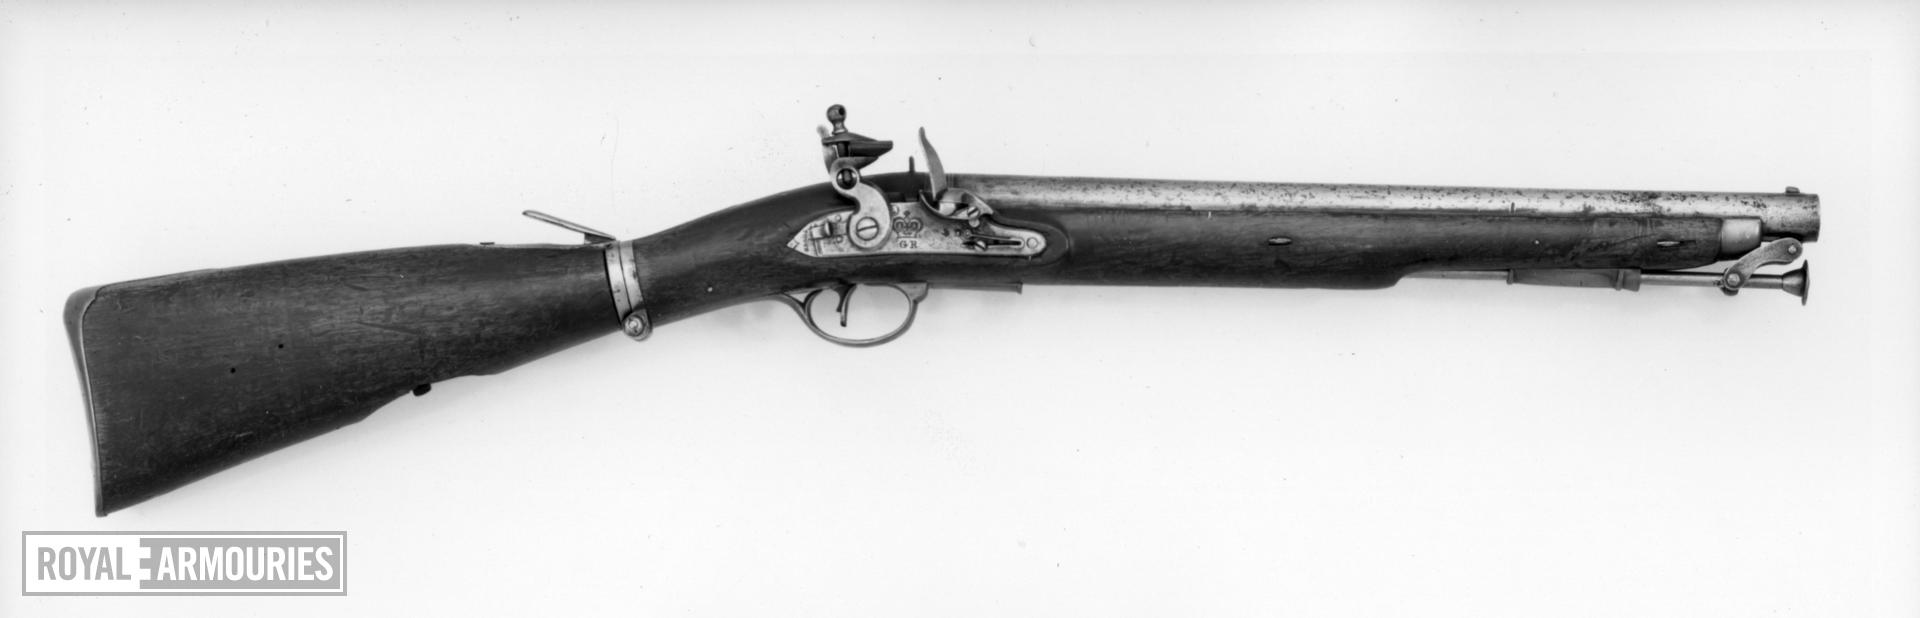 Flintlock military carbine (Paget carbine) for the 16th (Queen's) Light Dragoons. British, about 1805 (XII.1037)